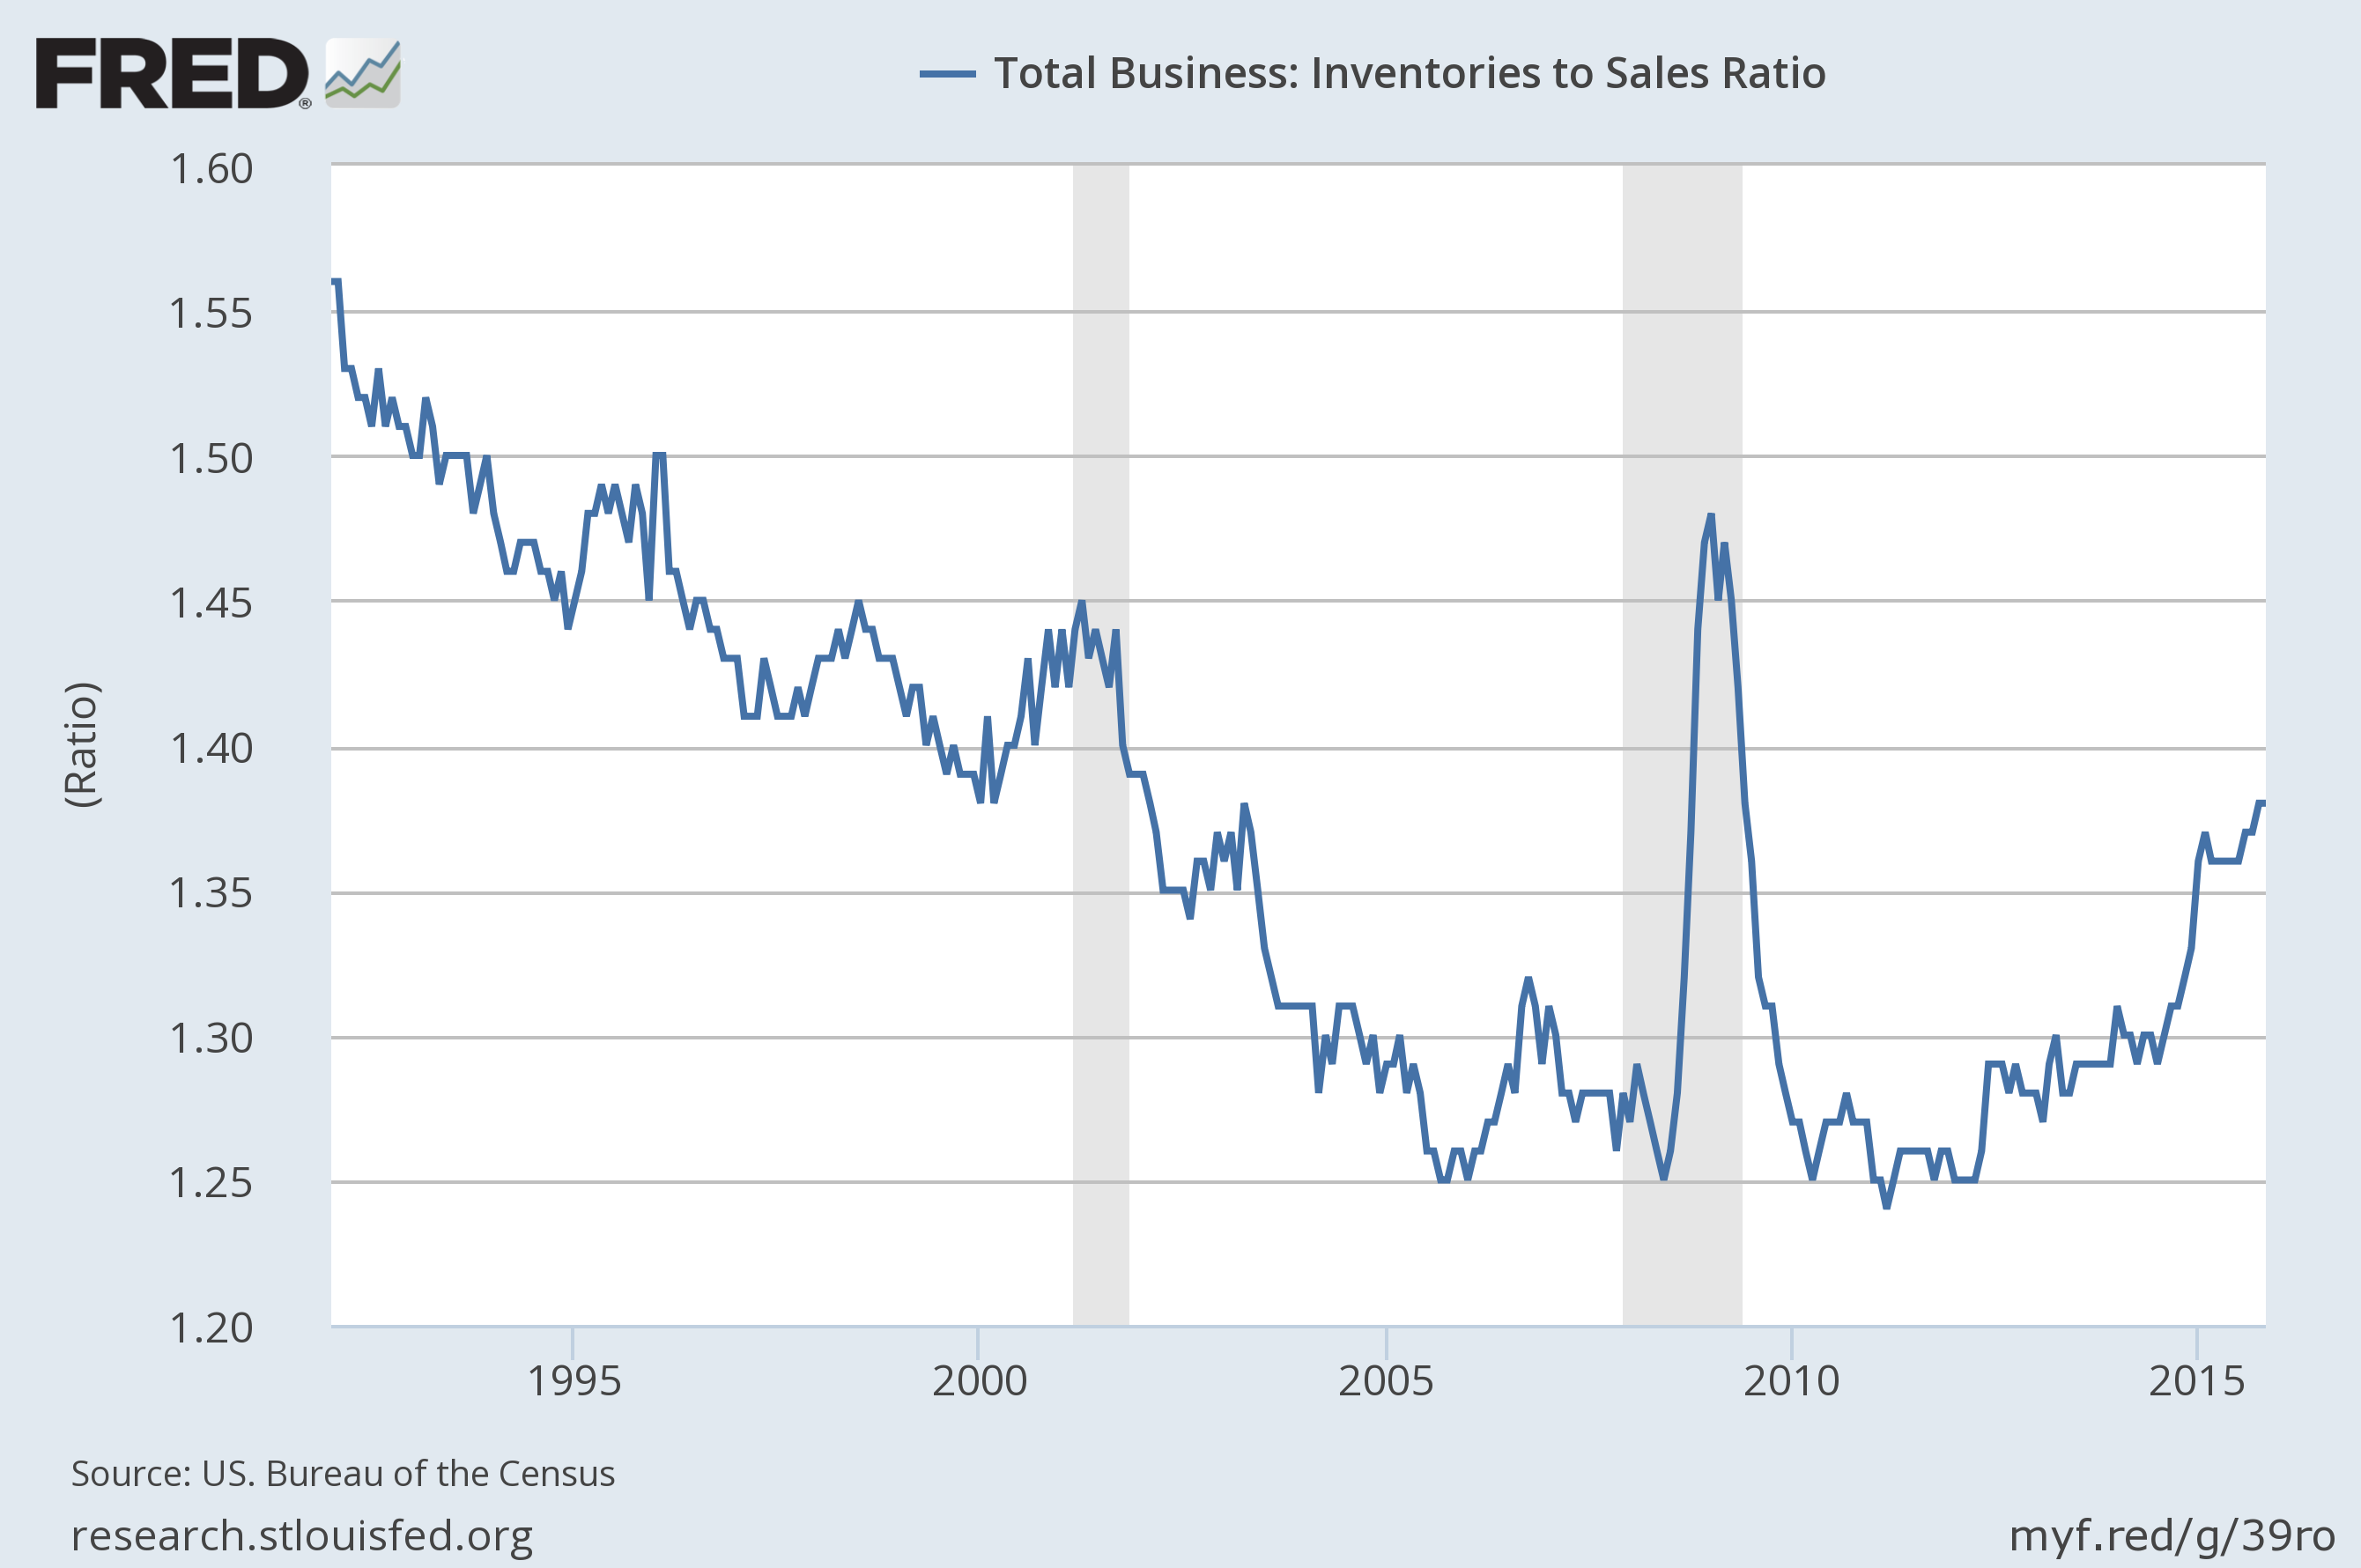 Total Business: Inventories to Sales Ratio Source: Federal Reserve Bank of St. Louis